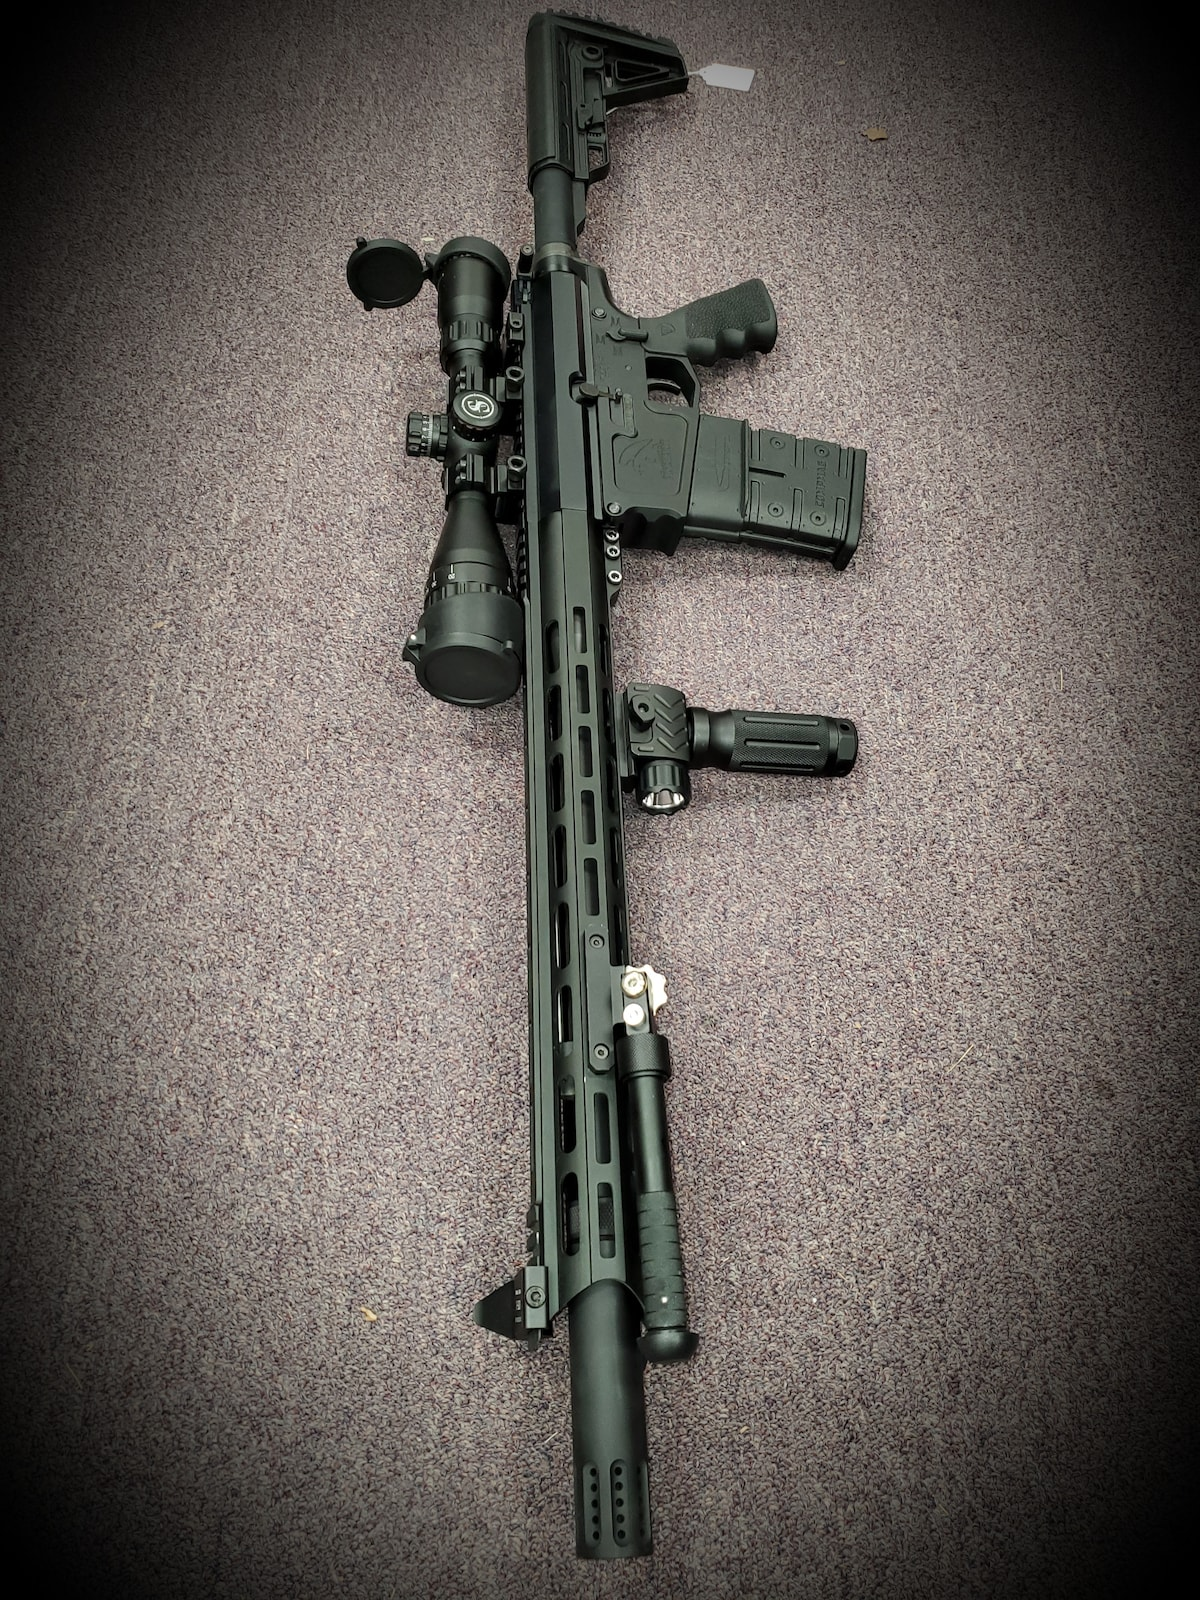 MORIARTI ARMAMENTS FIXED MAGAZINE AR10 Full package Ready to go